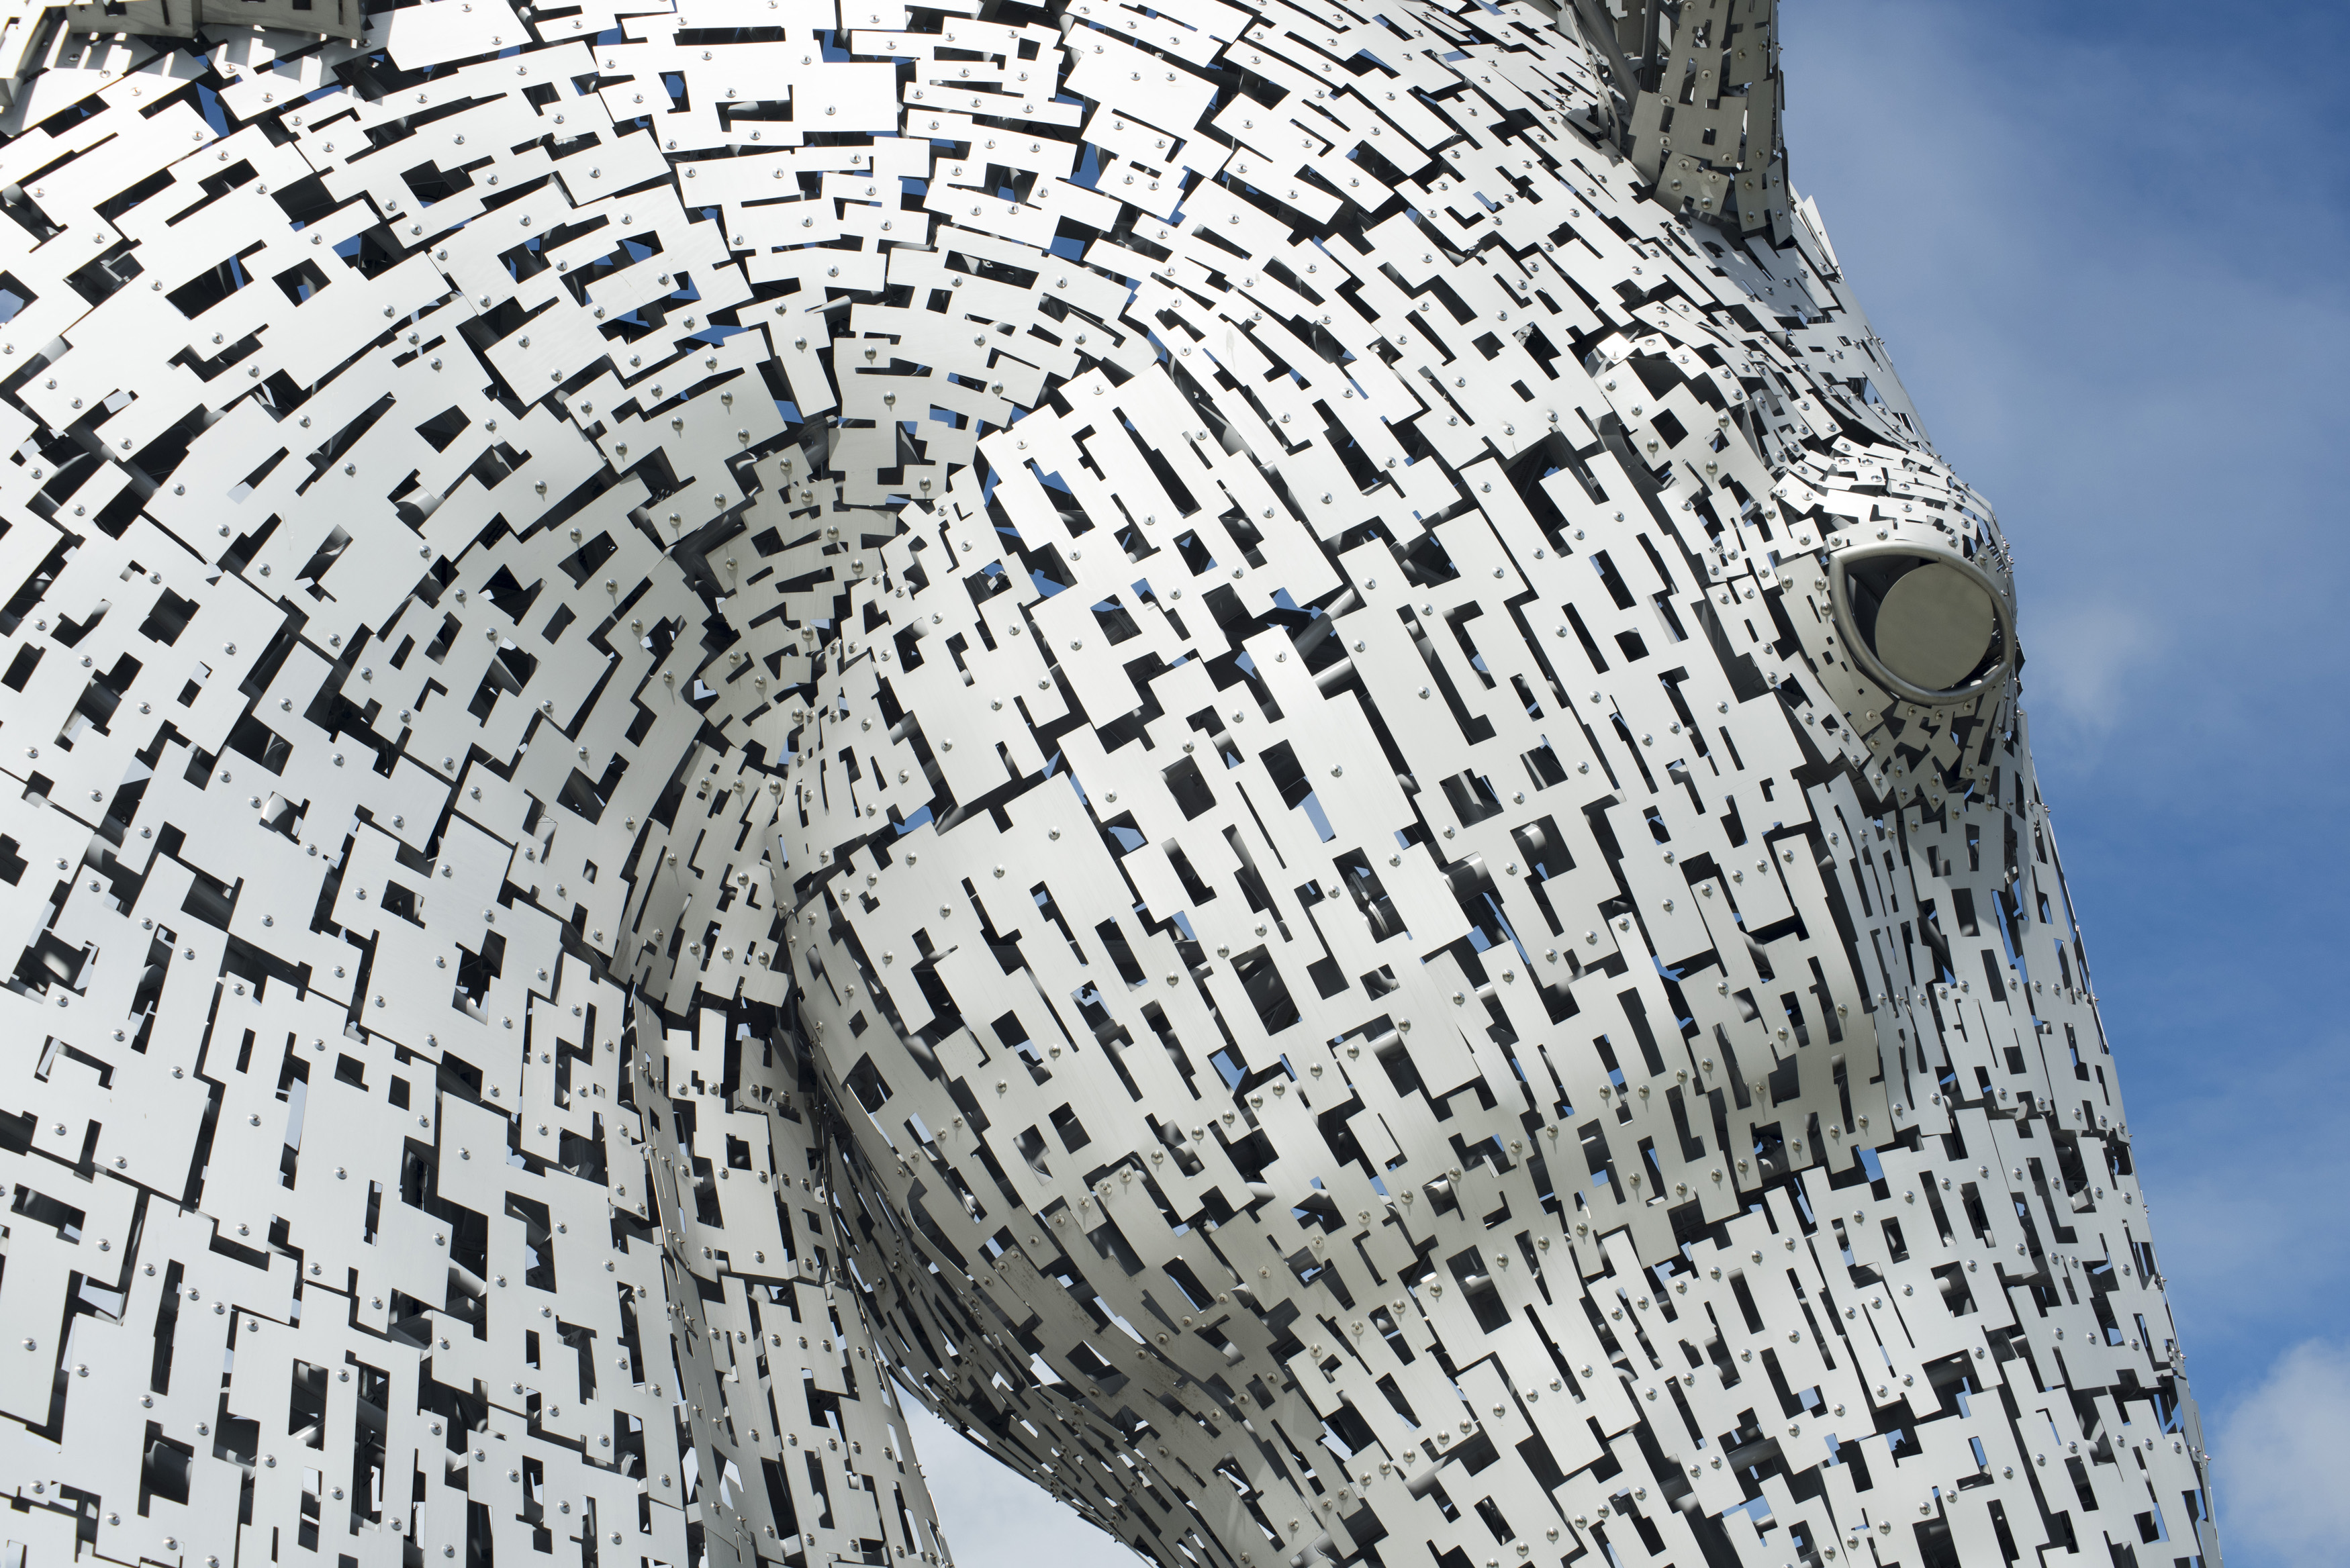 Close up detail of a Kelpies horse statue, Falkirk, Scotland erected to commemorate the role of horses in industry and a popular tourist landmark